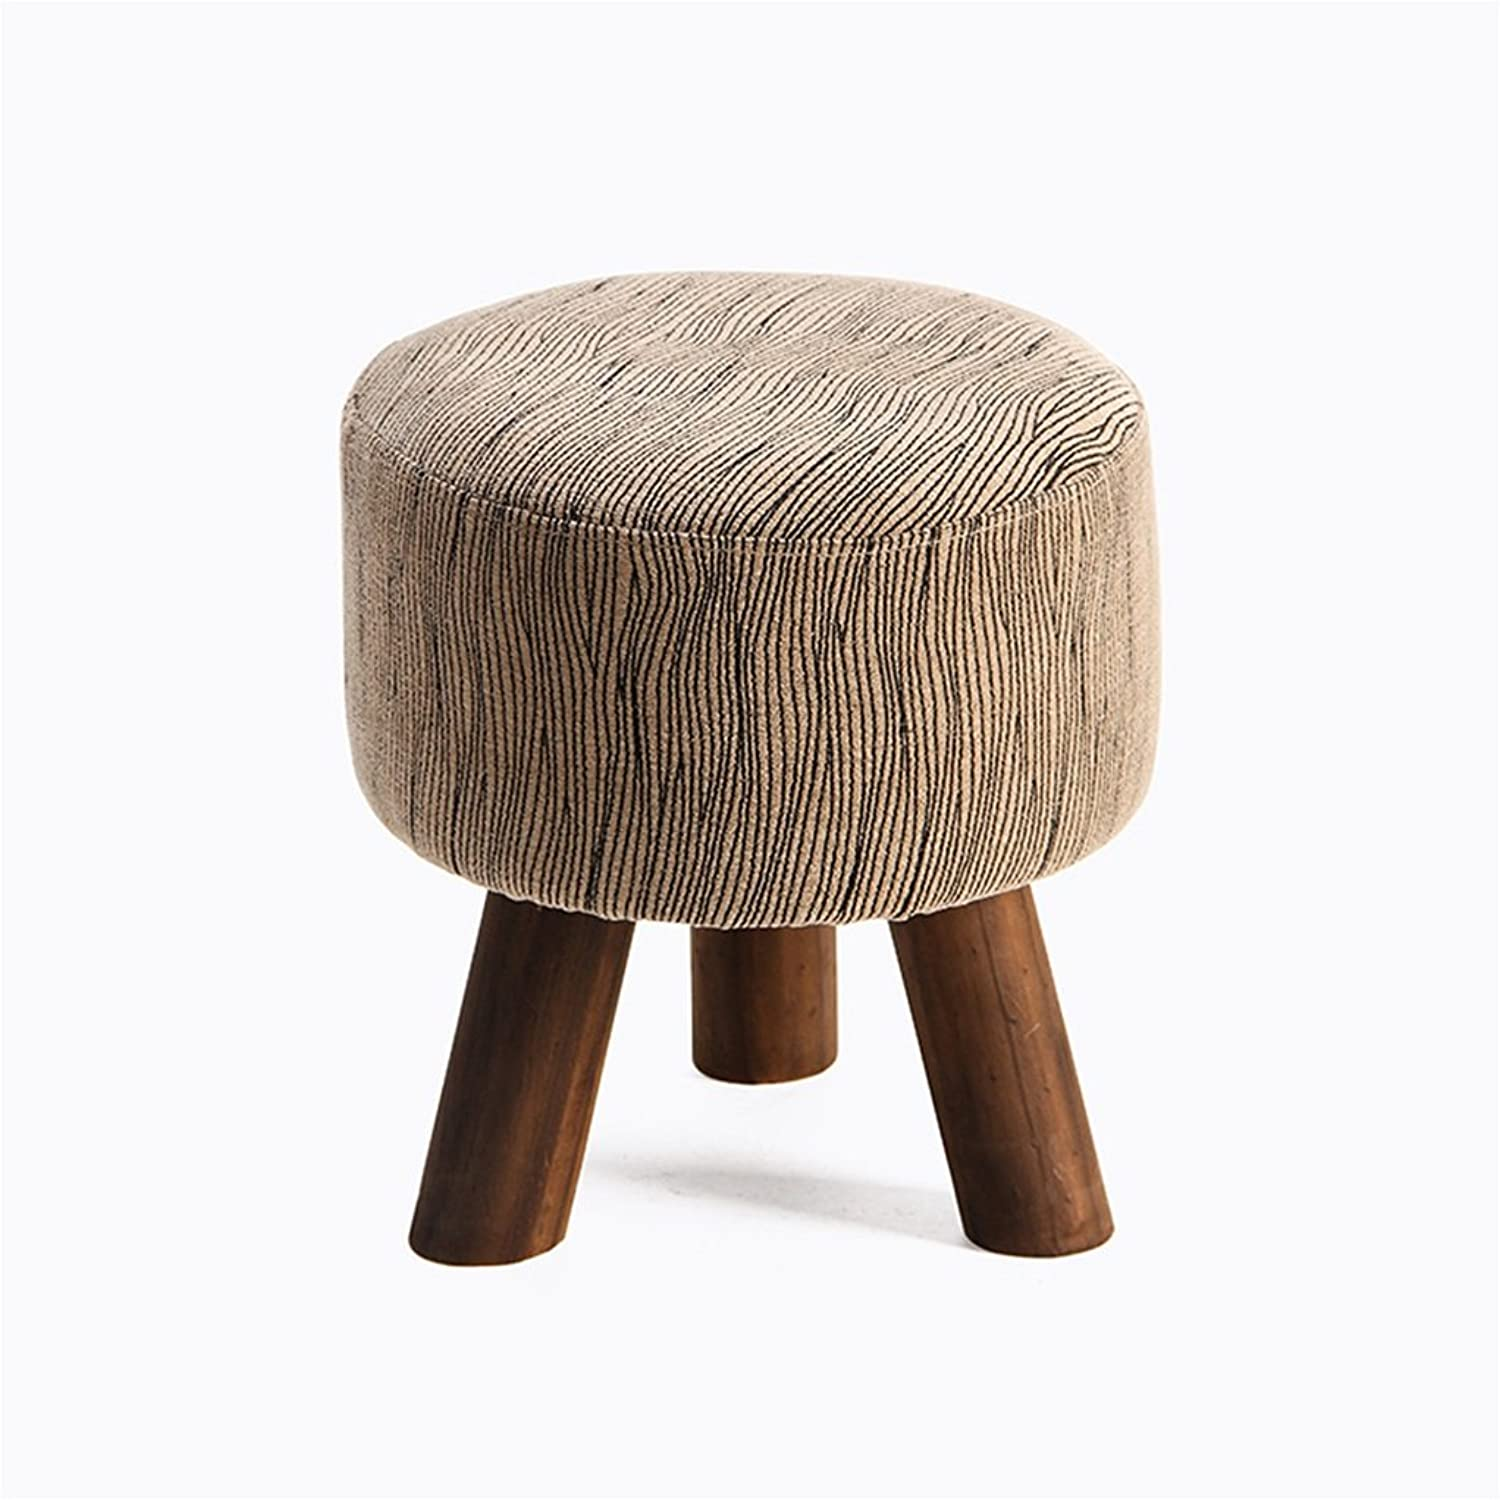 Multi-Purpose Small Stool for Living Room Linen Cloth Solid Wood Stool Leg Simple Fashion Style Diameter 30.5cm (12in), Height 33.5cm (13in) (Size   A)